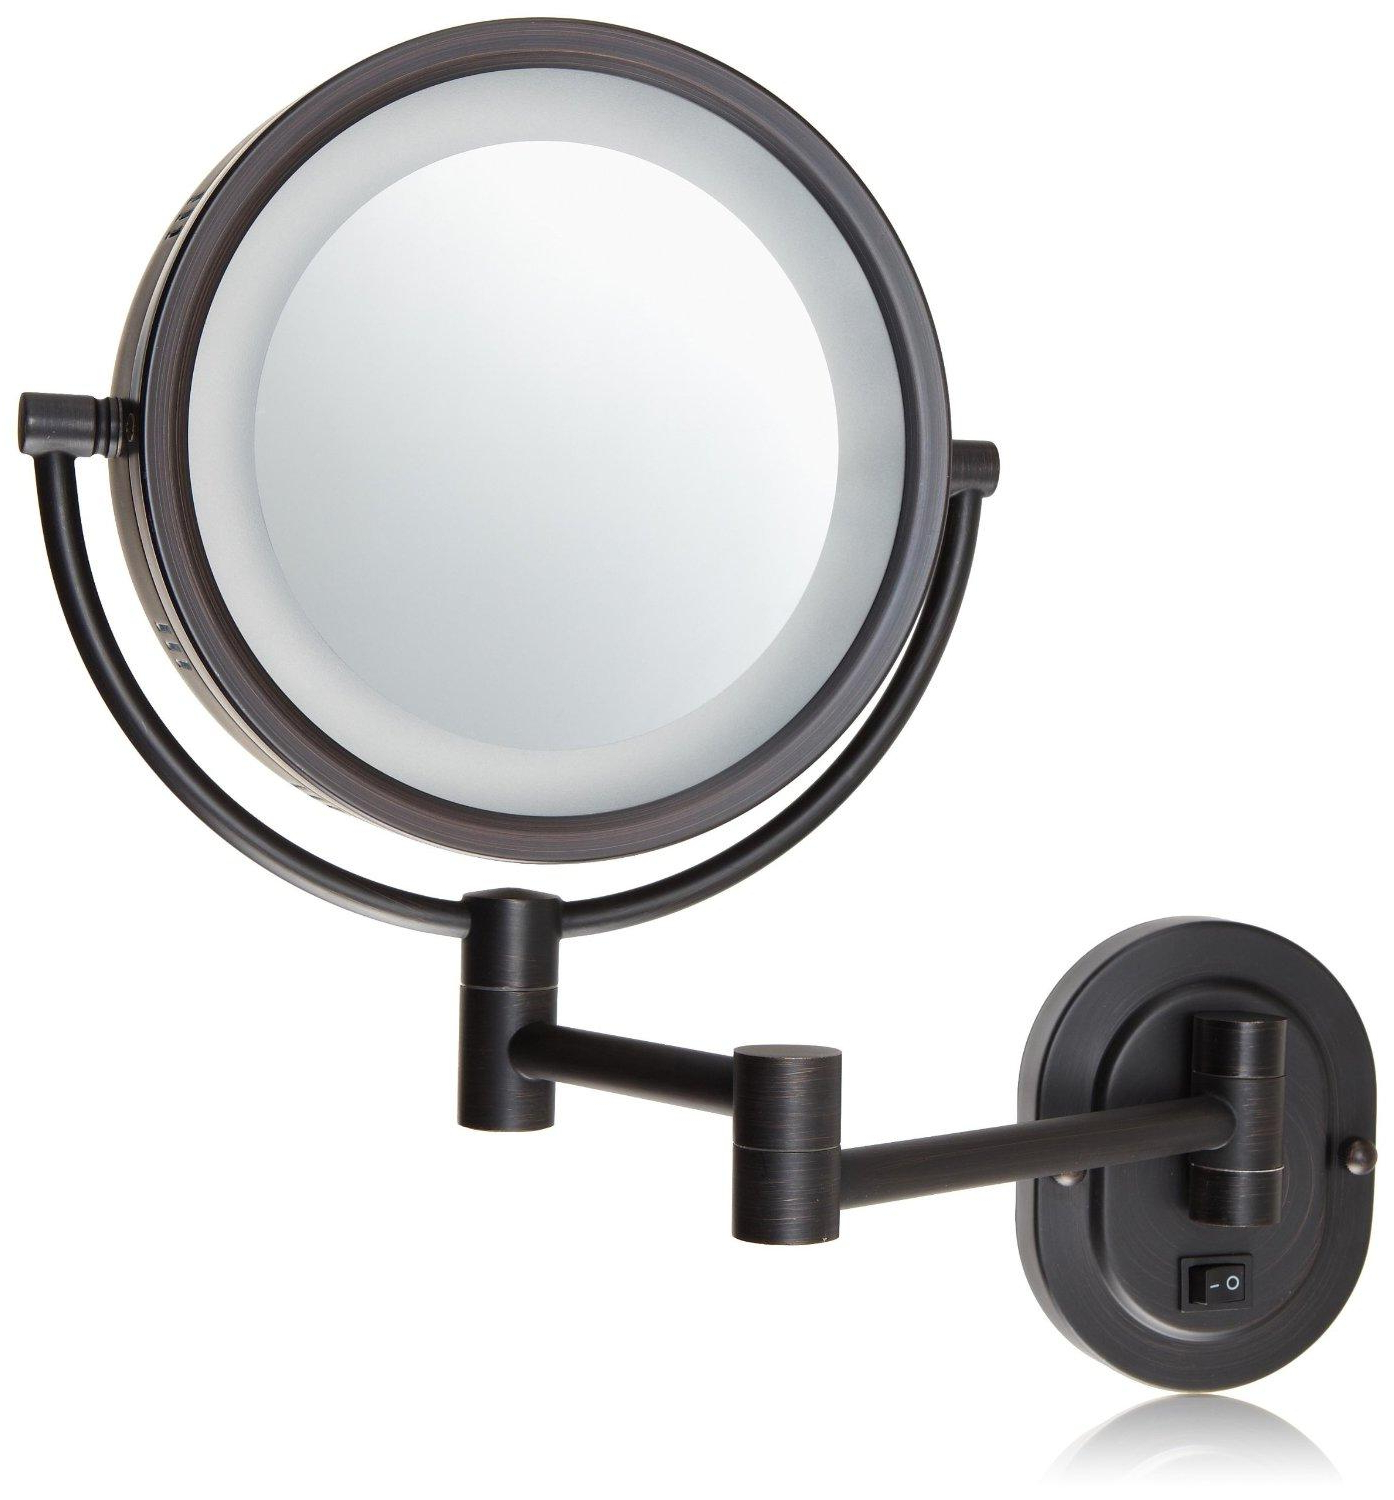 Magnified Wall Mirrors With Regard To Popular Jerdon Hl65bzd 8 Inch Lighted Direct Wire Wall Mount Makeup Mirror With 5x Magnification, Bronze Finish (View 2 of 20)